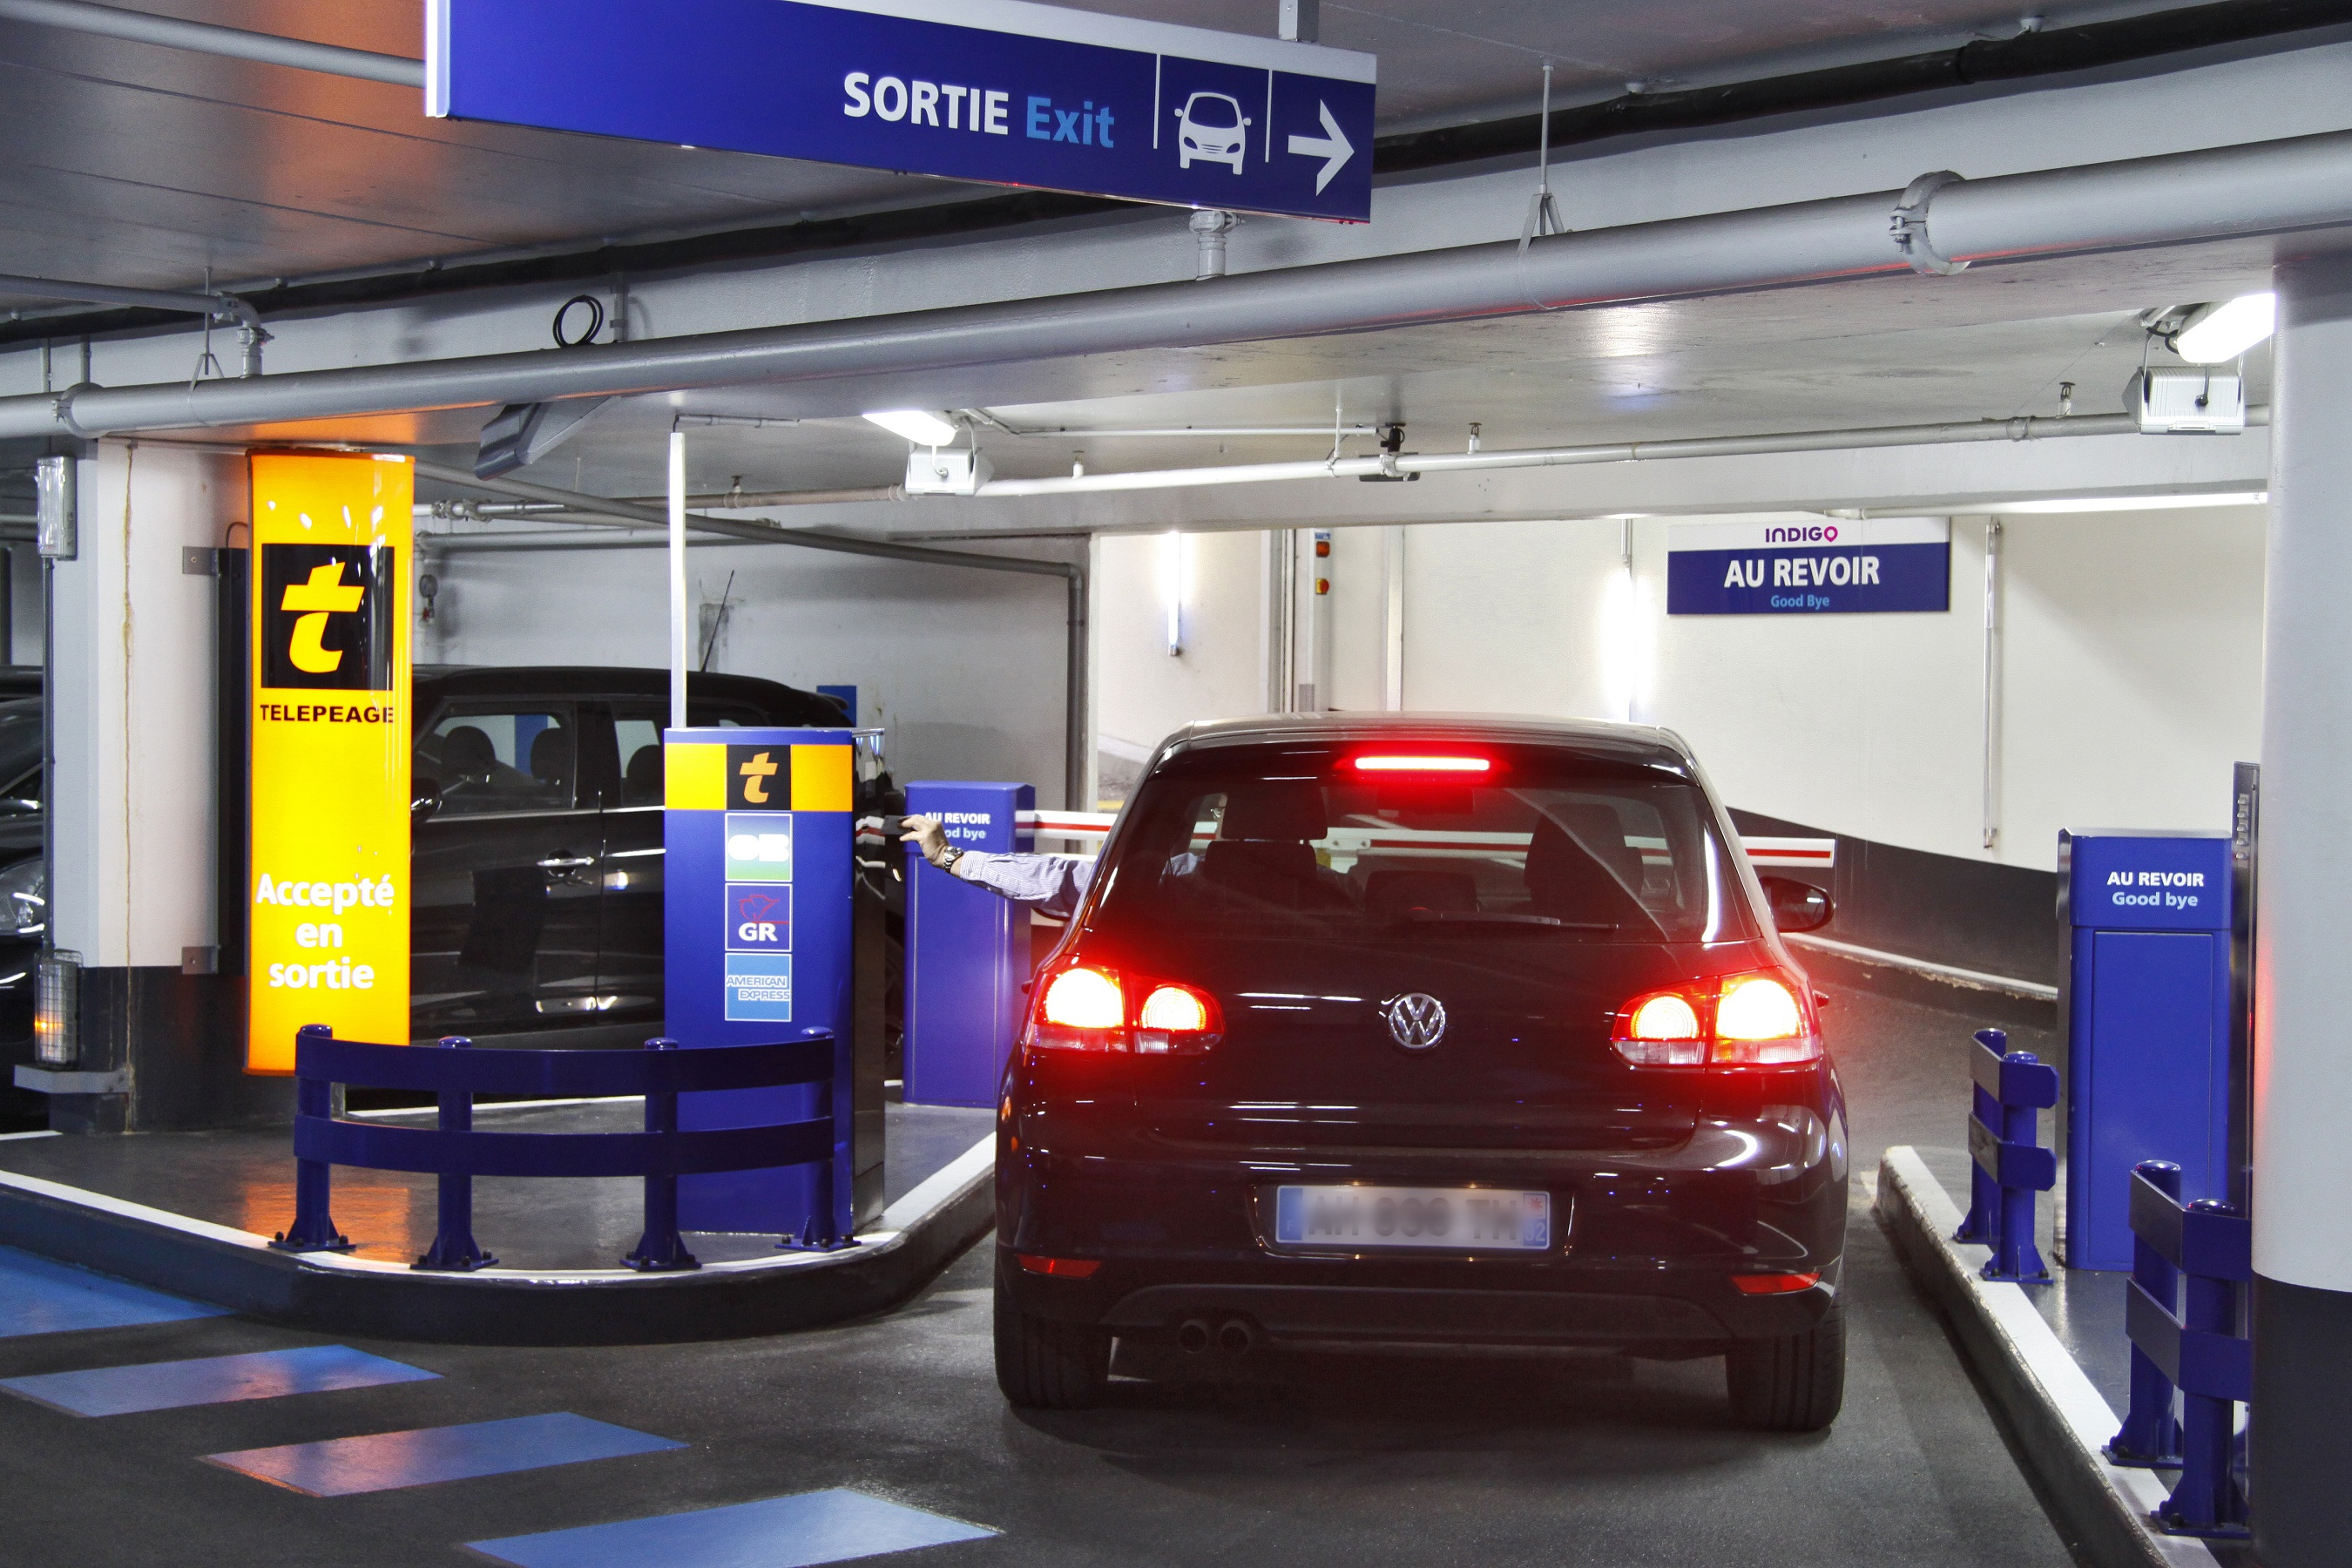 Parking Indigo Saint-Germain-En-Laye Château